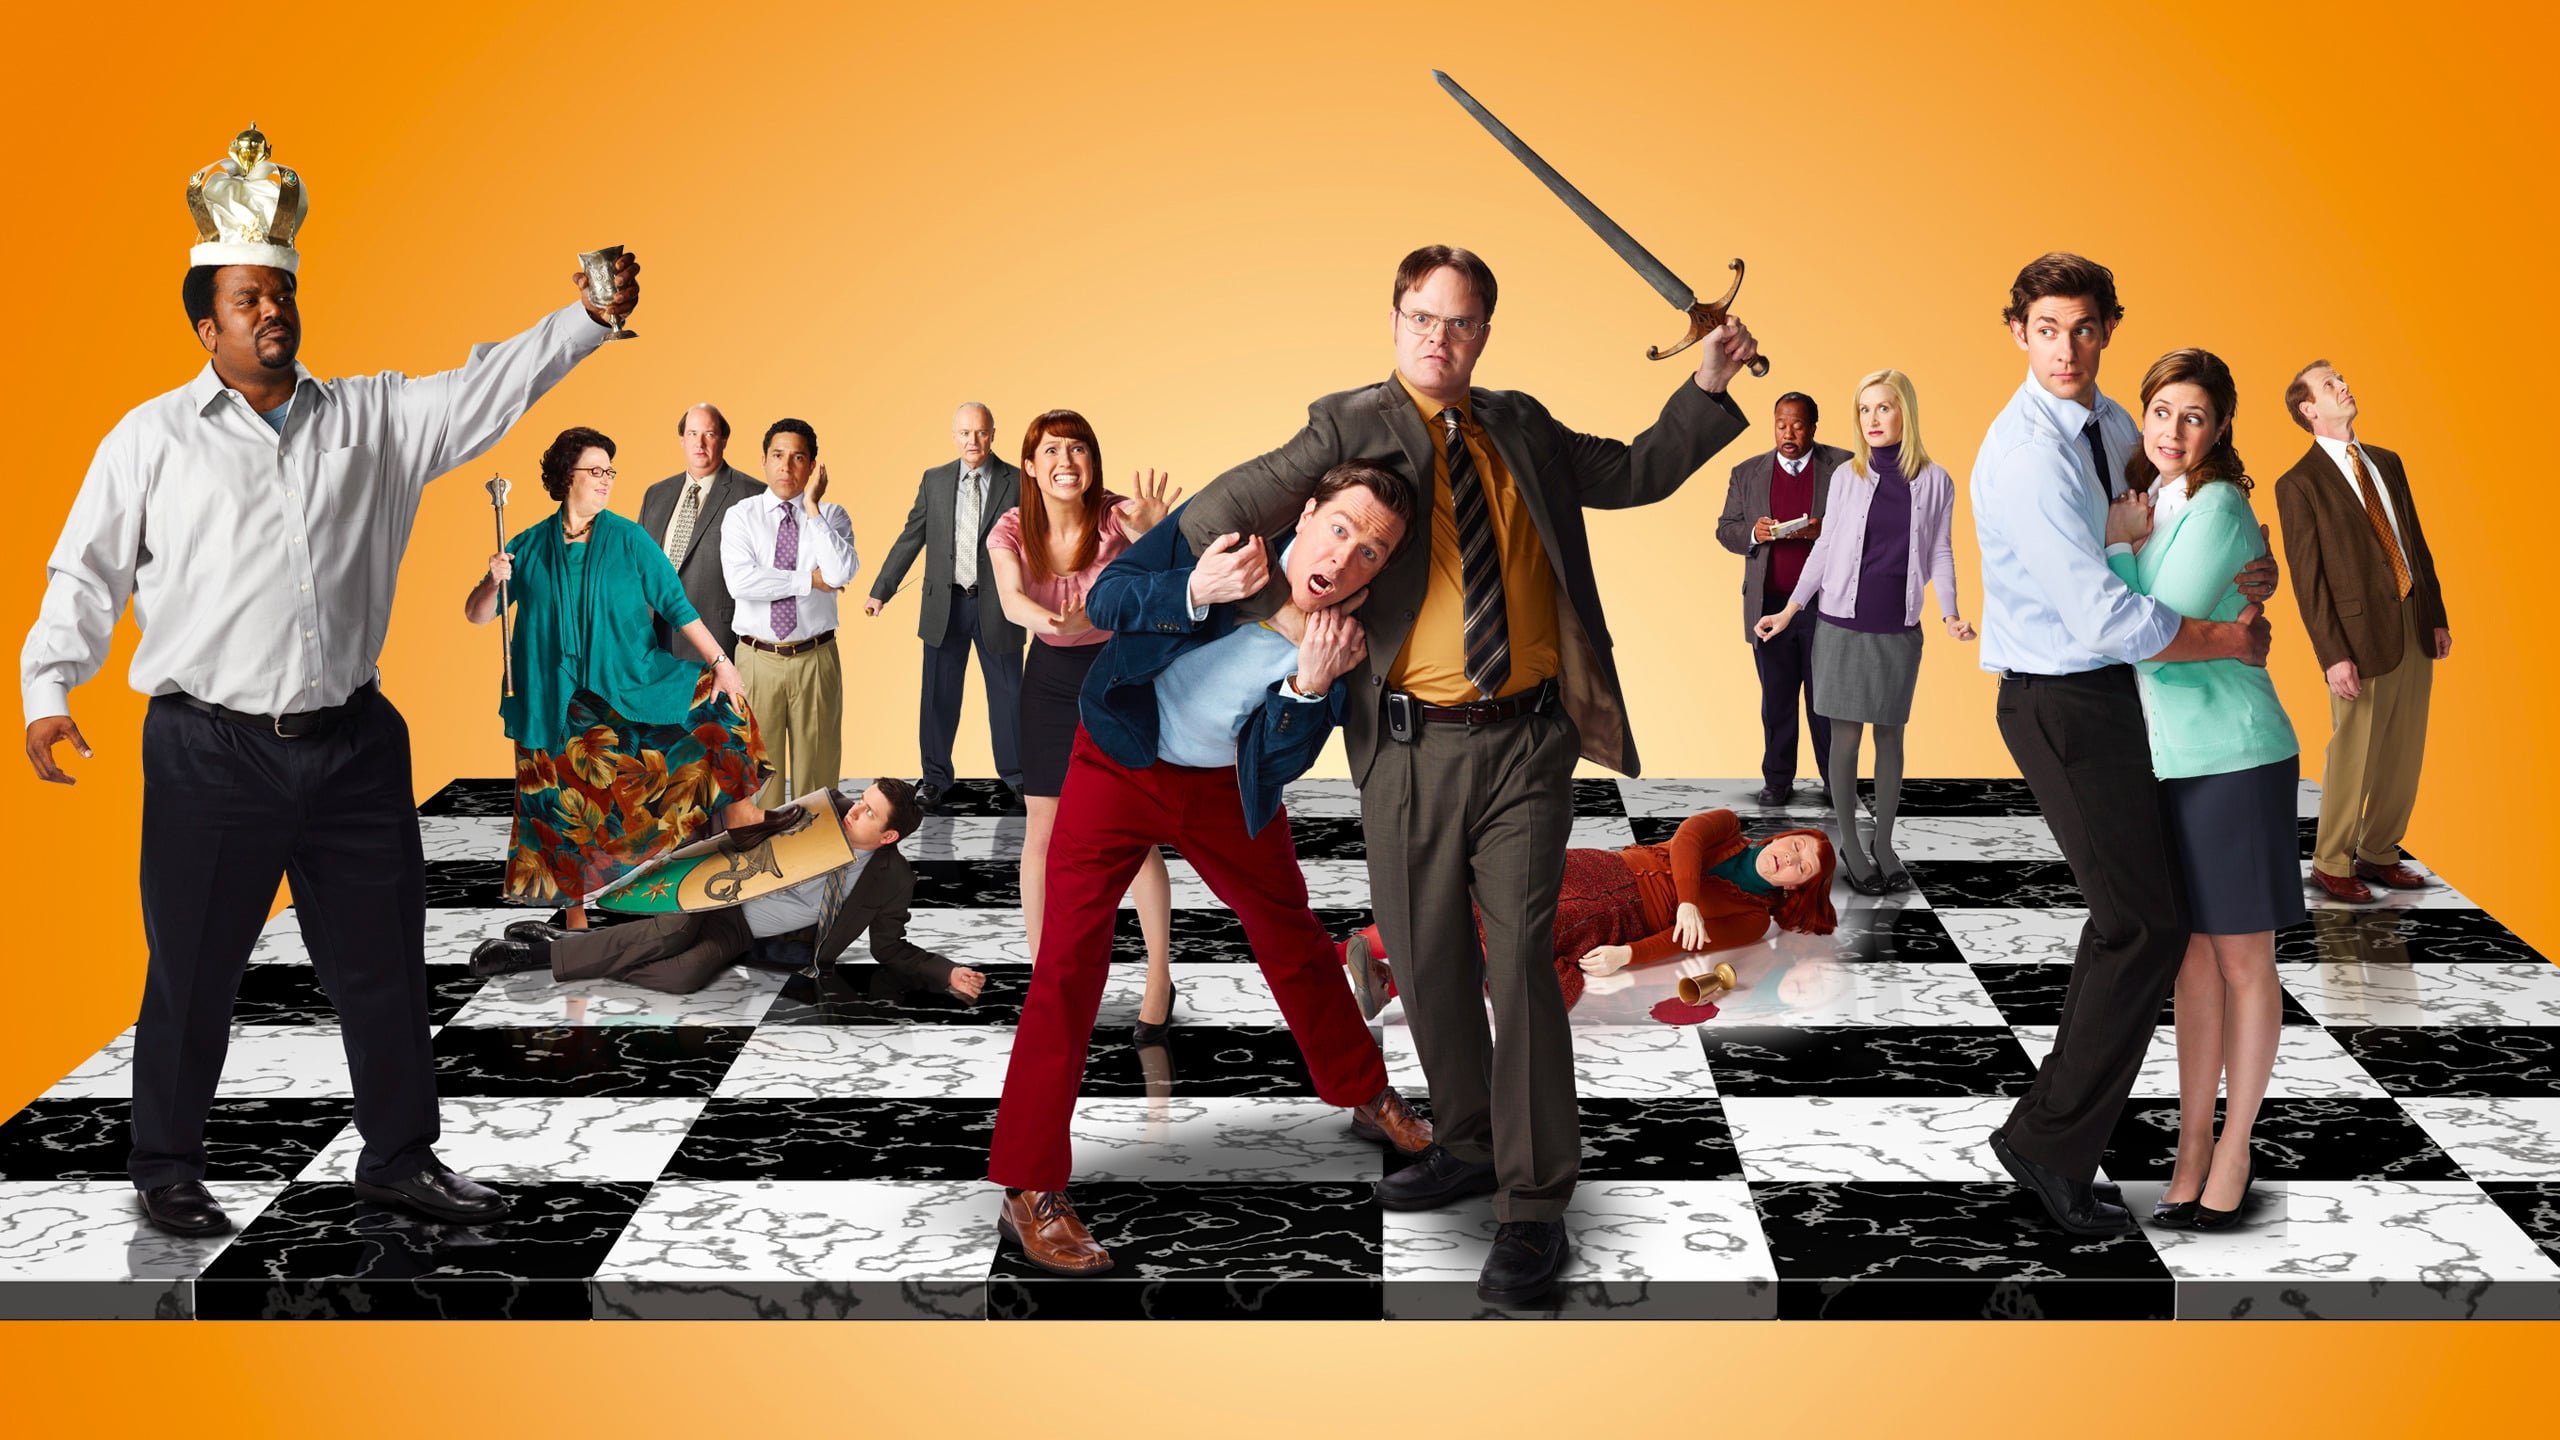 10 Comedy Shows to Watch if You Loved The Office